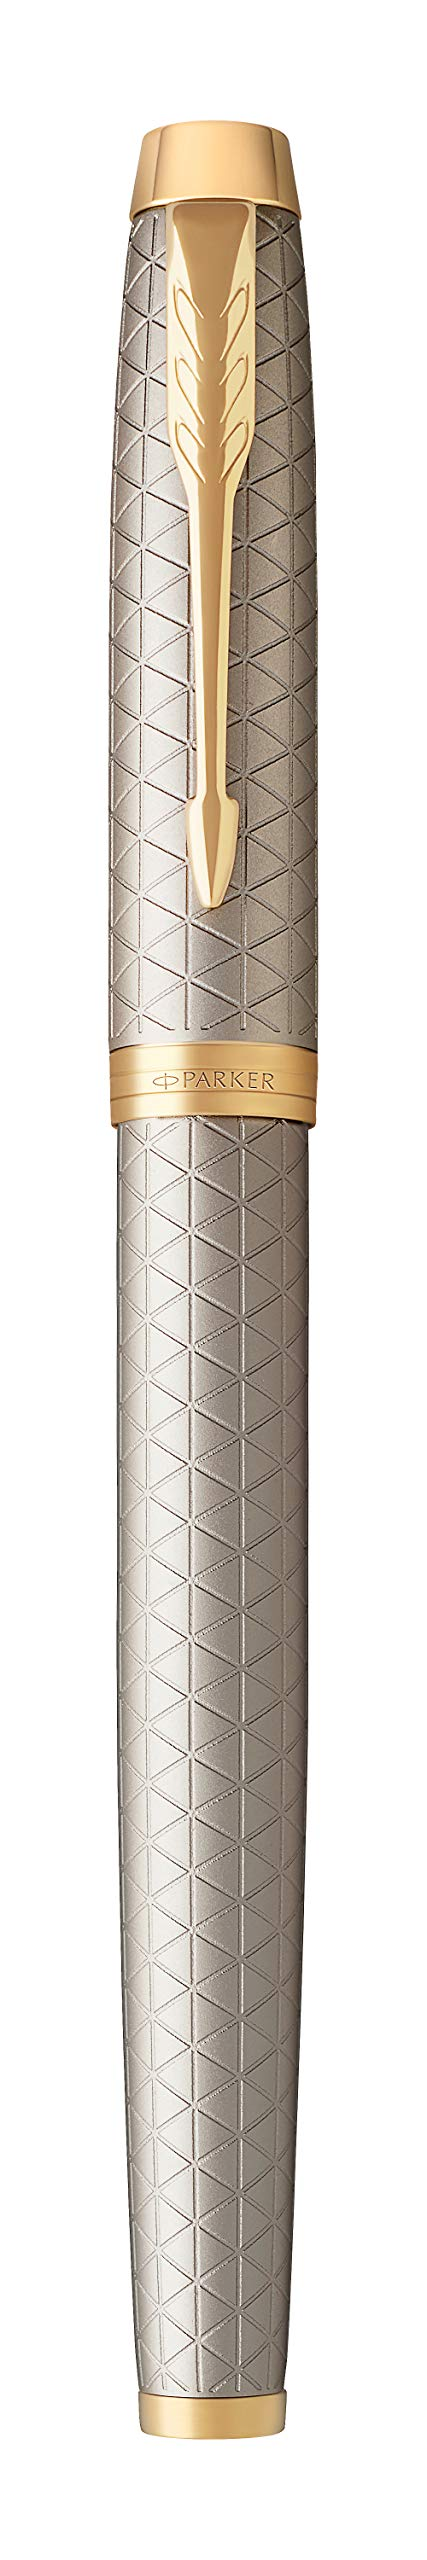 PARKER IM Rollerball Pen, Premium Warm Silver with Fine Point Black Ink Refill (1931686) by Parker (Image #5)